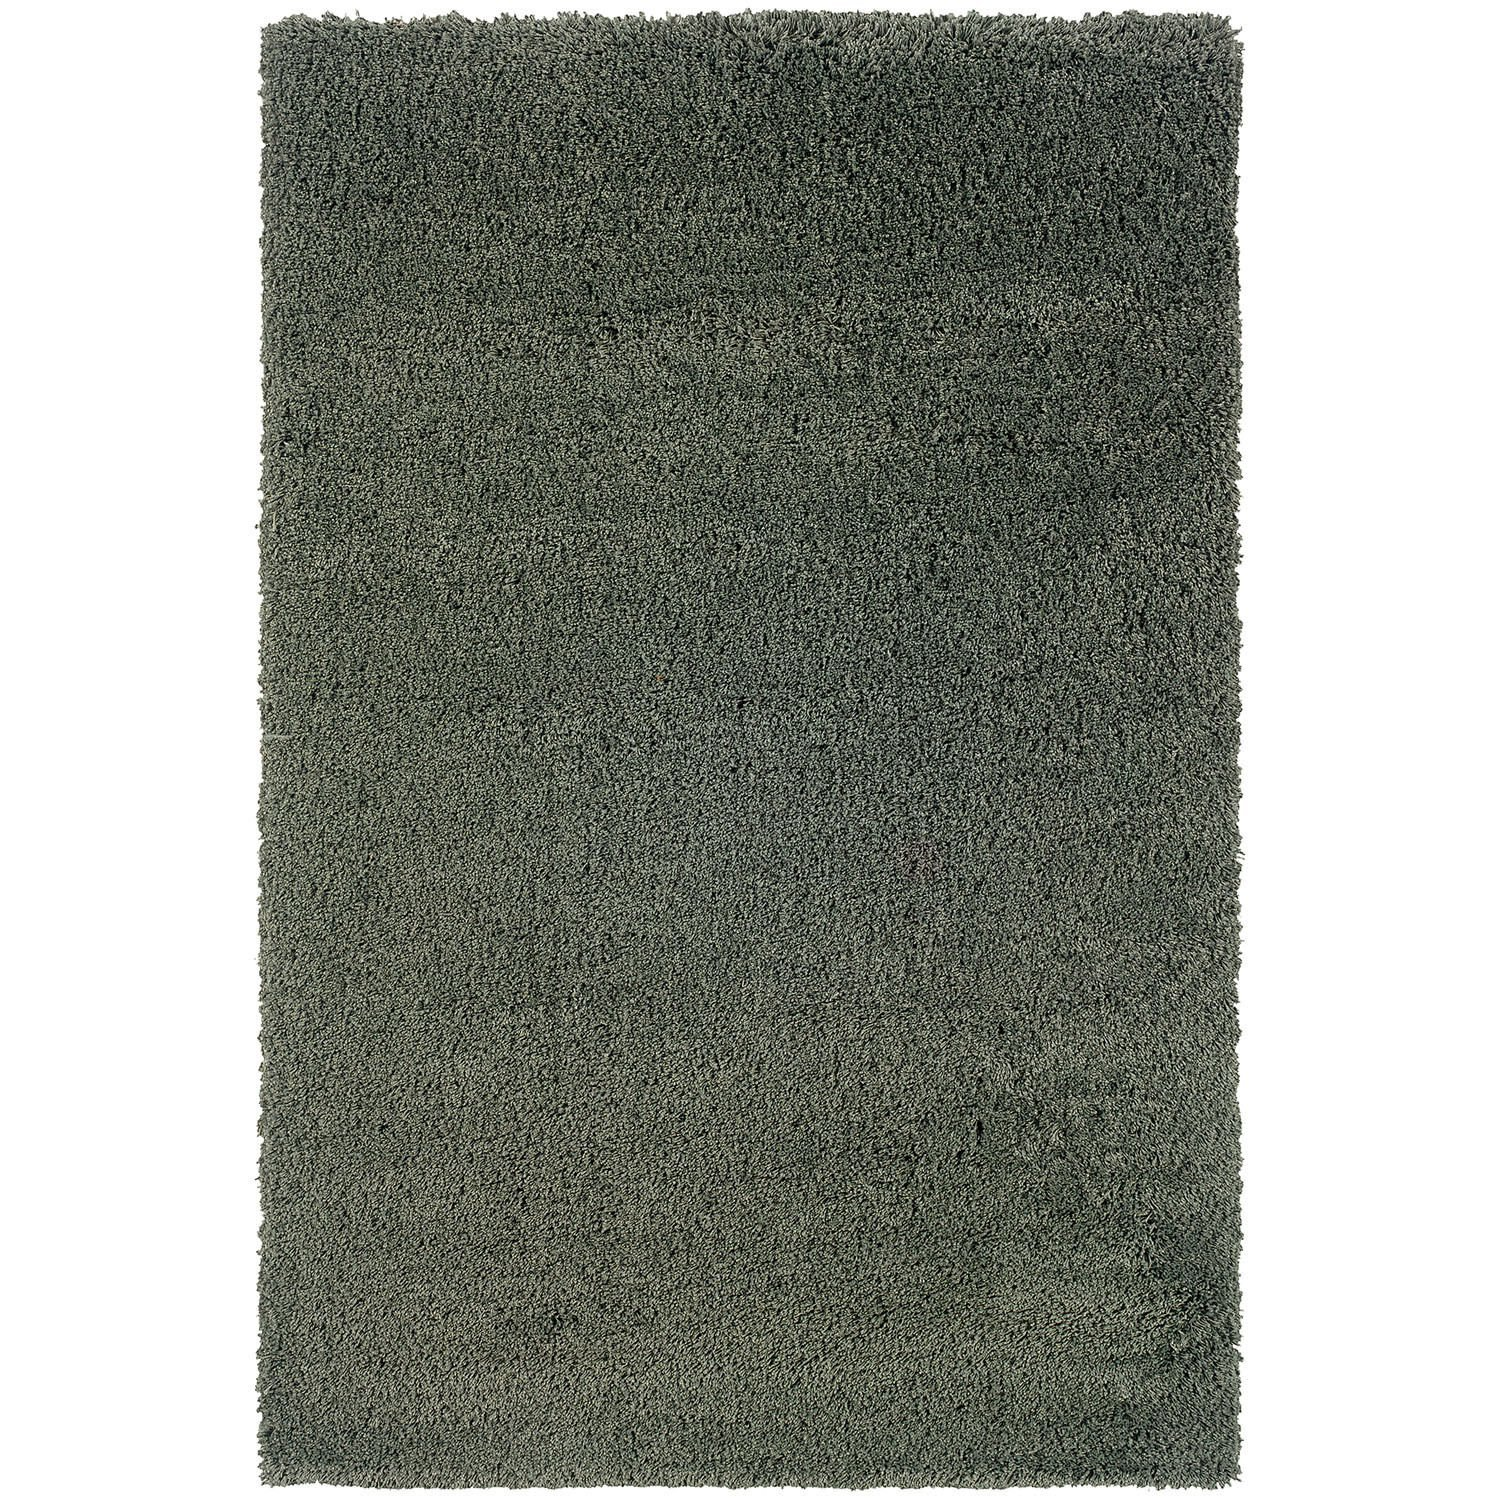 Area Rugs Solid Colors Find